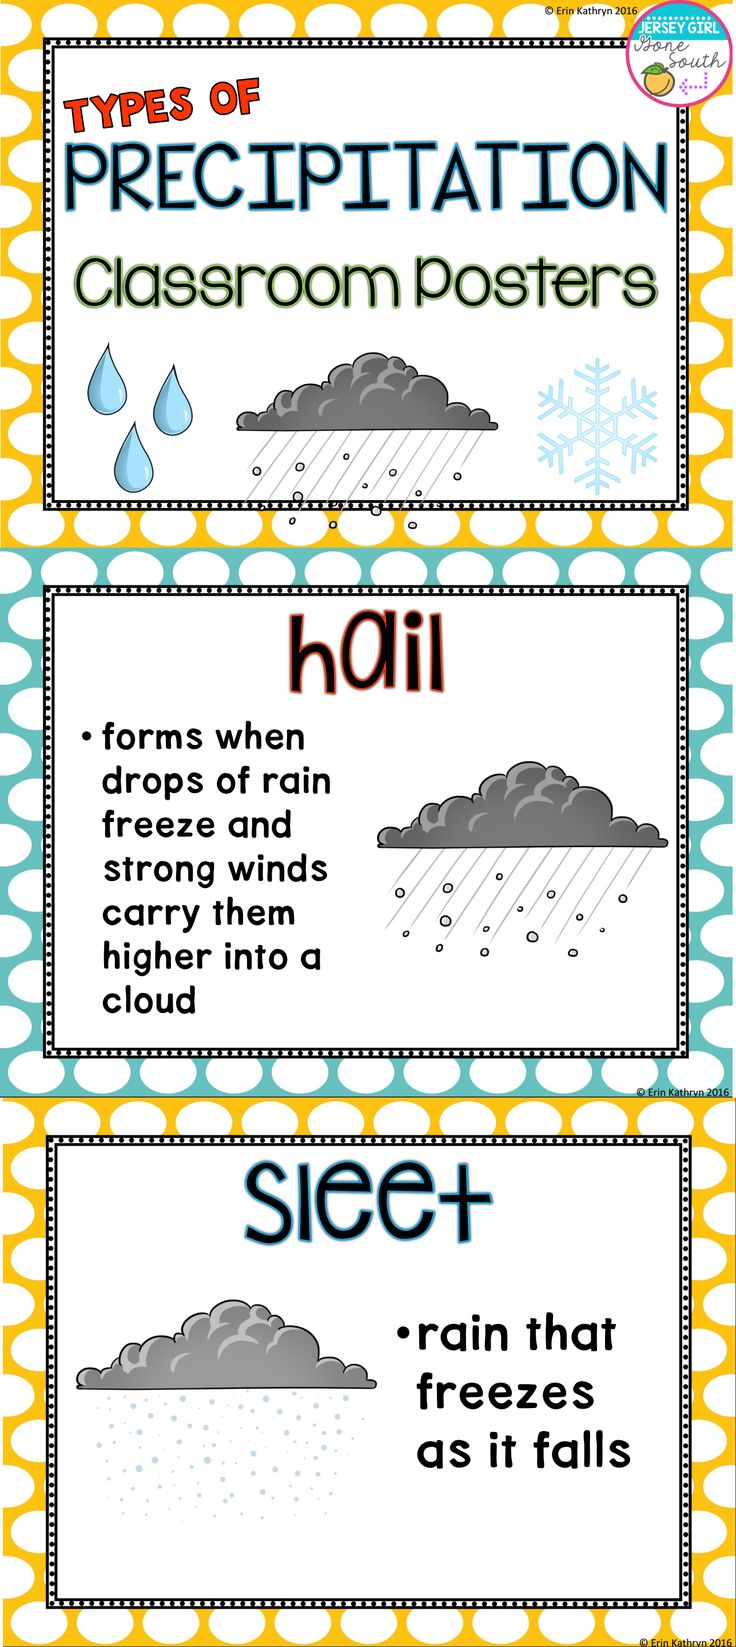 These classroom posters are a great visual when teaching about the different types of precipitation. You can also print these posters out and have your students glue them into their notebooks as a study tool!  Includes: - 1 poster with all 4 types of precipitation - rain - snow - sleet  - hail